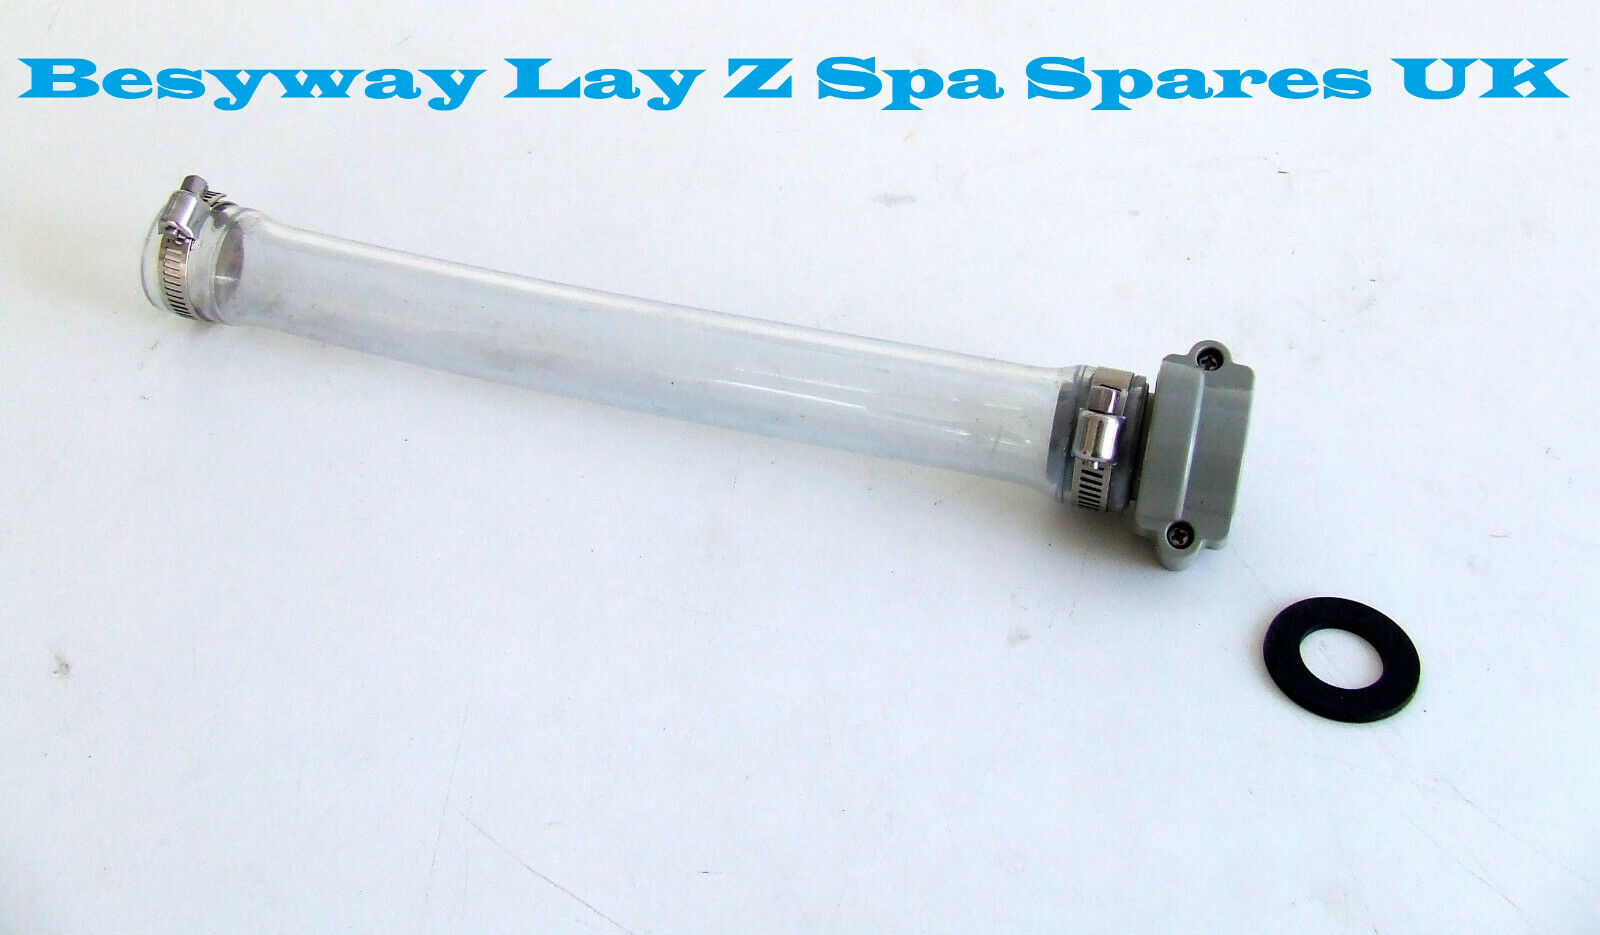 BESTWAY Lay Z Spa B pipework connector from pool to water pump 2x new seals